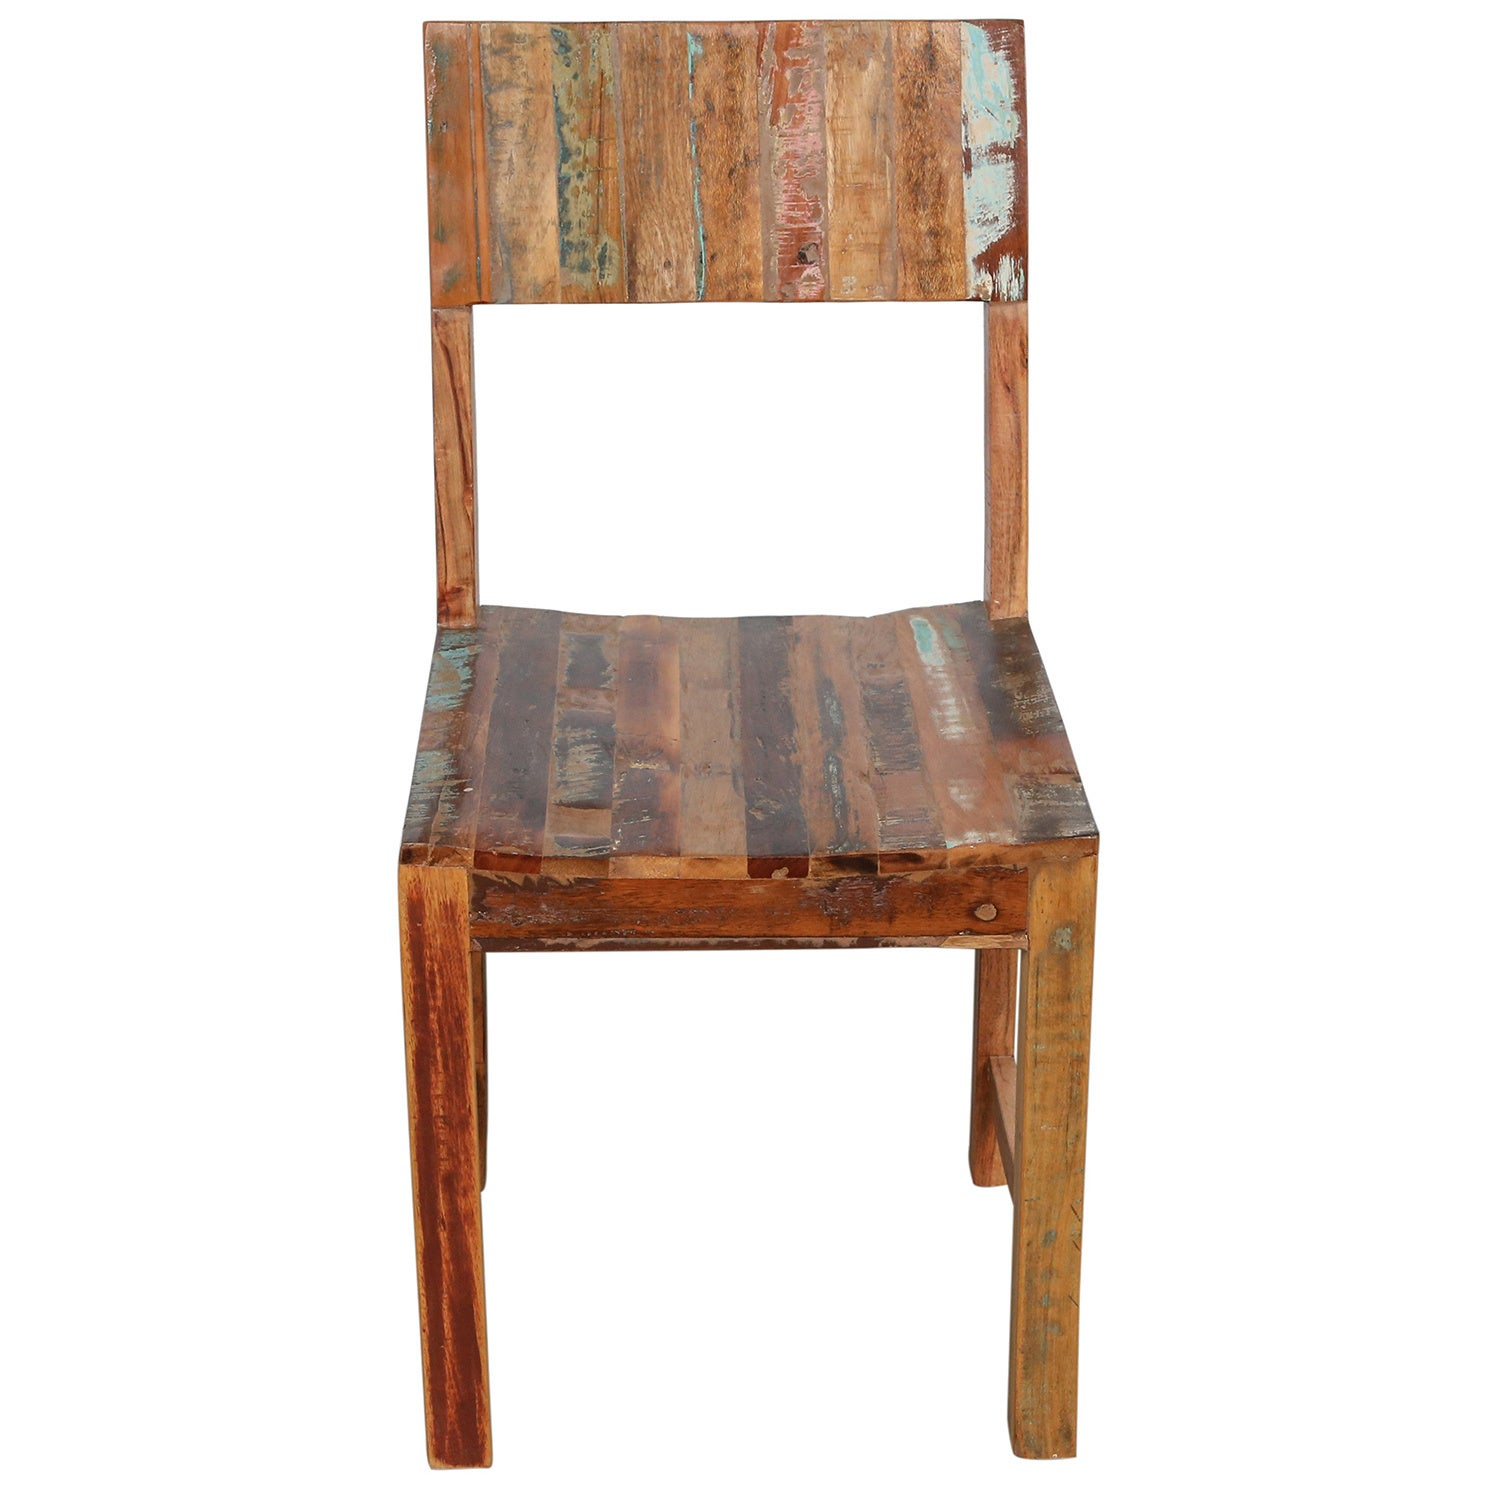 Awesome Wanderloot Brooklyn Reclaimed Wood Dining Chair   Free Shipping Today    Overstock   19051688